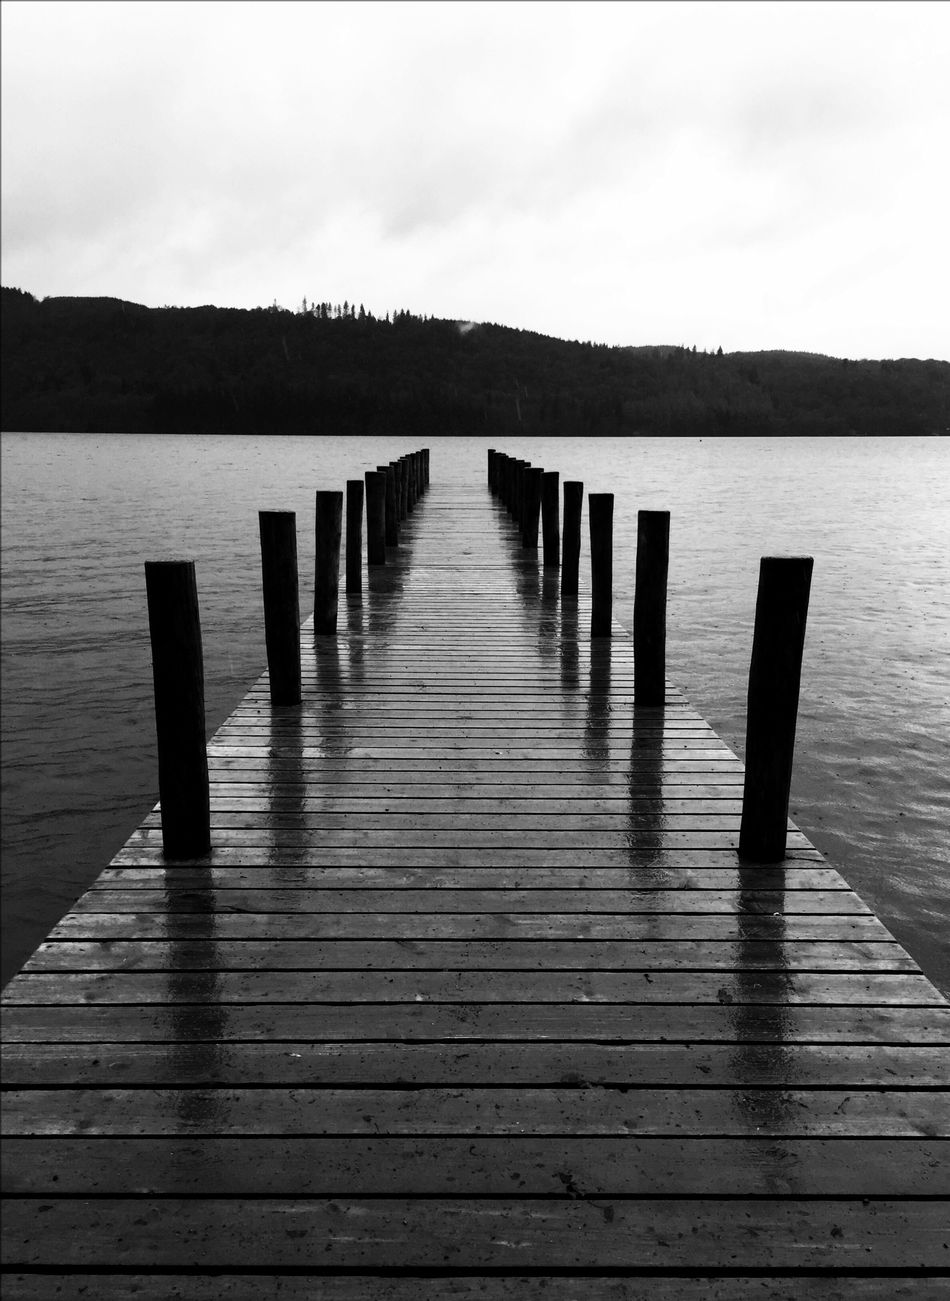 Lake Windermere Lake Lake View Jetty Blackandwhite Black And White Black & White Monochrome Landscape Leading Lines Water Waterfront EyeEm Best Shots EyeEm Best Shots - Black + White Capture The Moment Welcome To Black